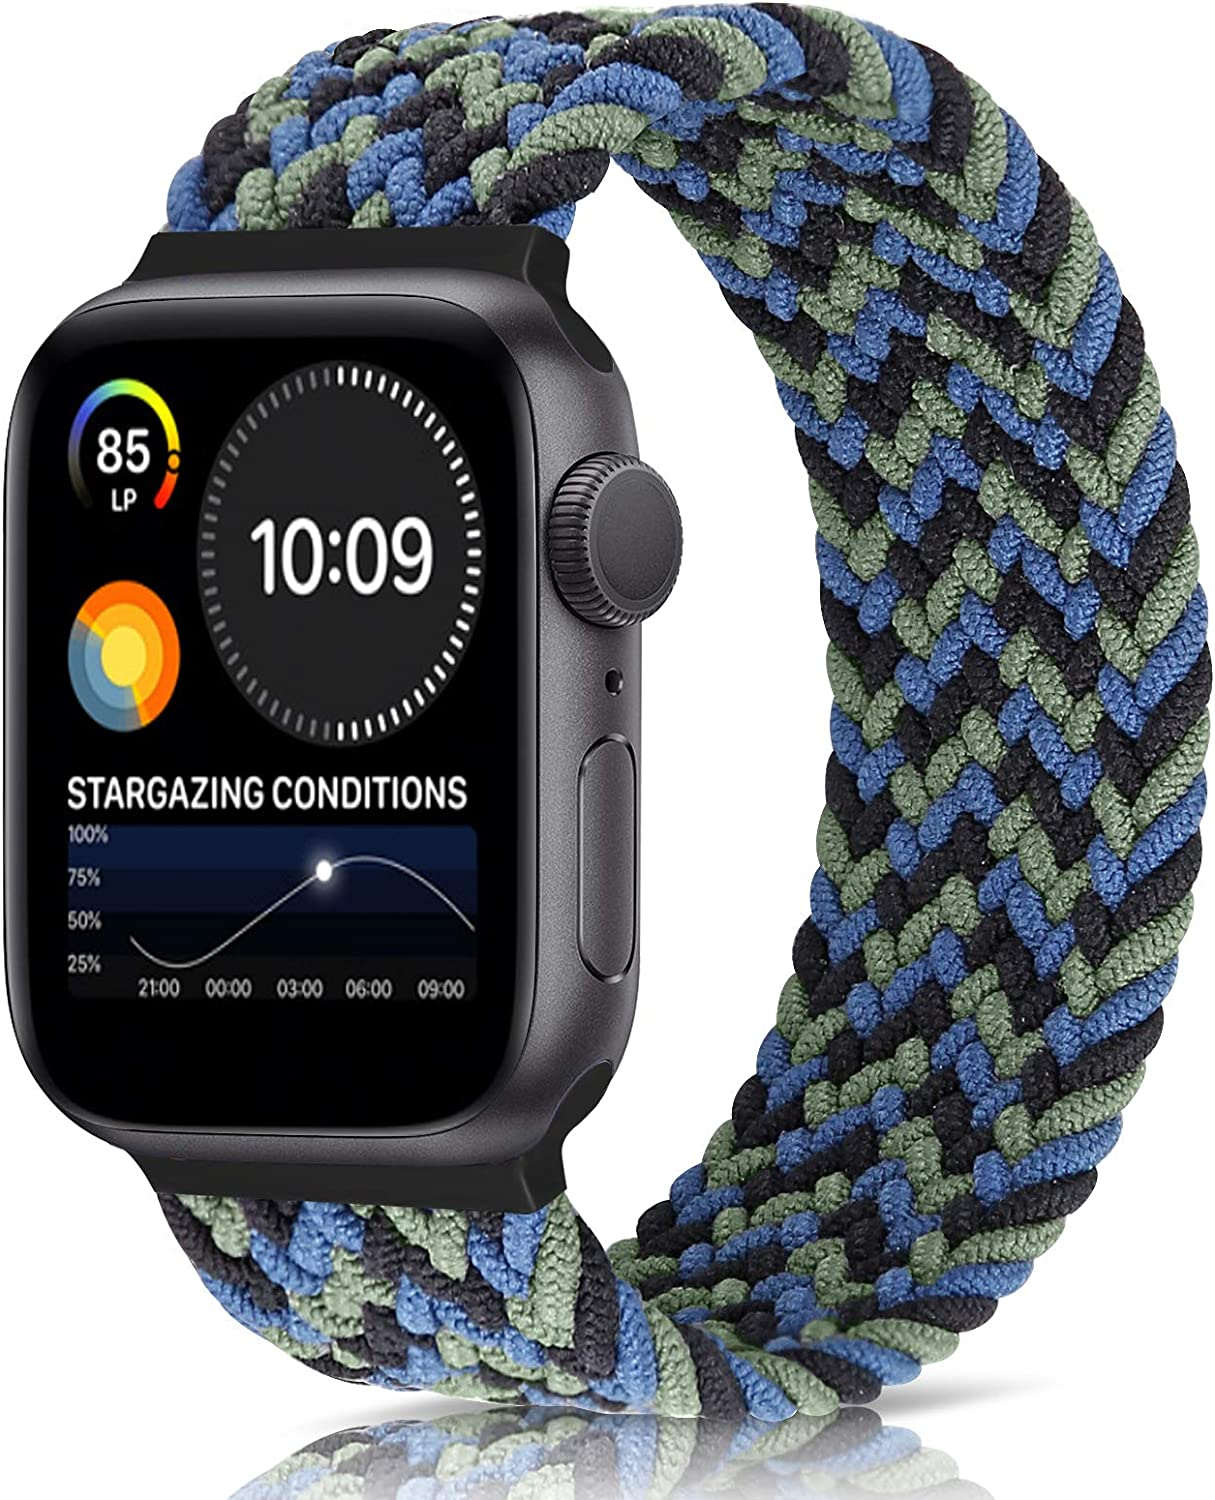 Unnite Braided Stretchy Solo Loop Band Compatible with Apple Watch 42mm 44mm, Sport Straps Nylon Woven Elastic Watch Bands Compatible for iWatch Series 6/5/4/3/2/1/SE (Camouflage Blue, 42mm/44mm:#8)